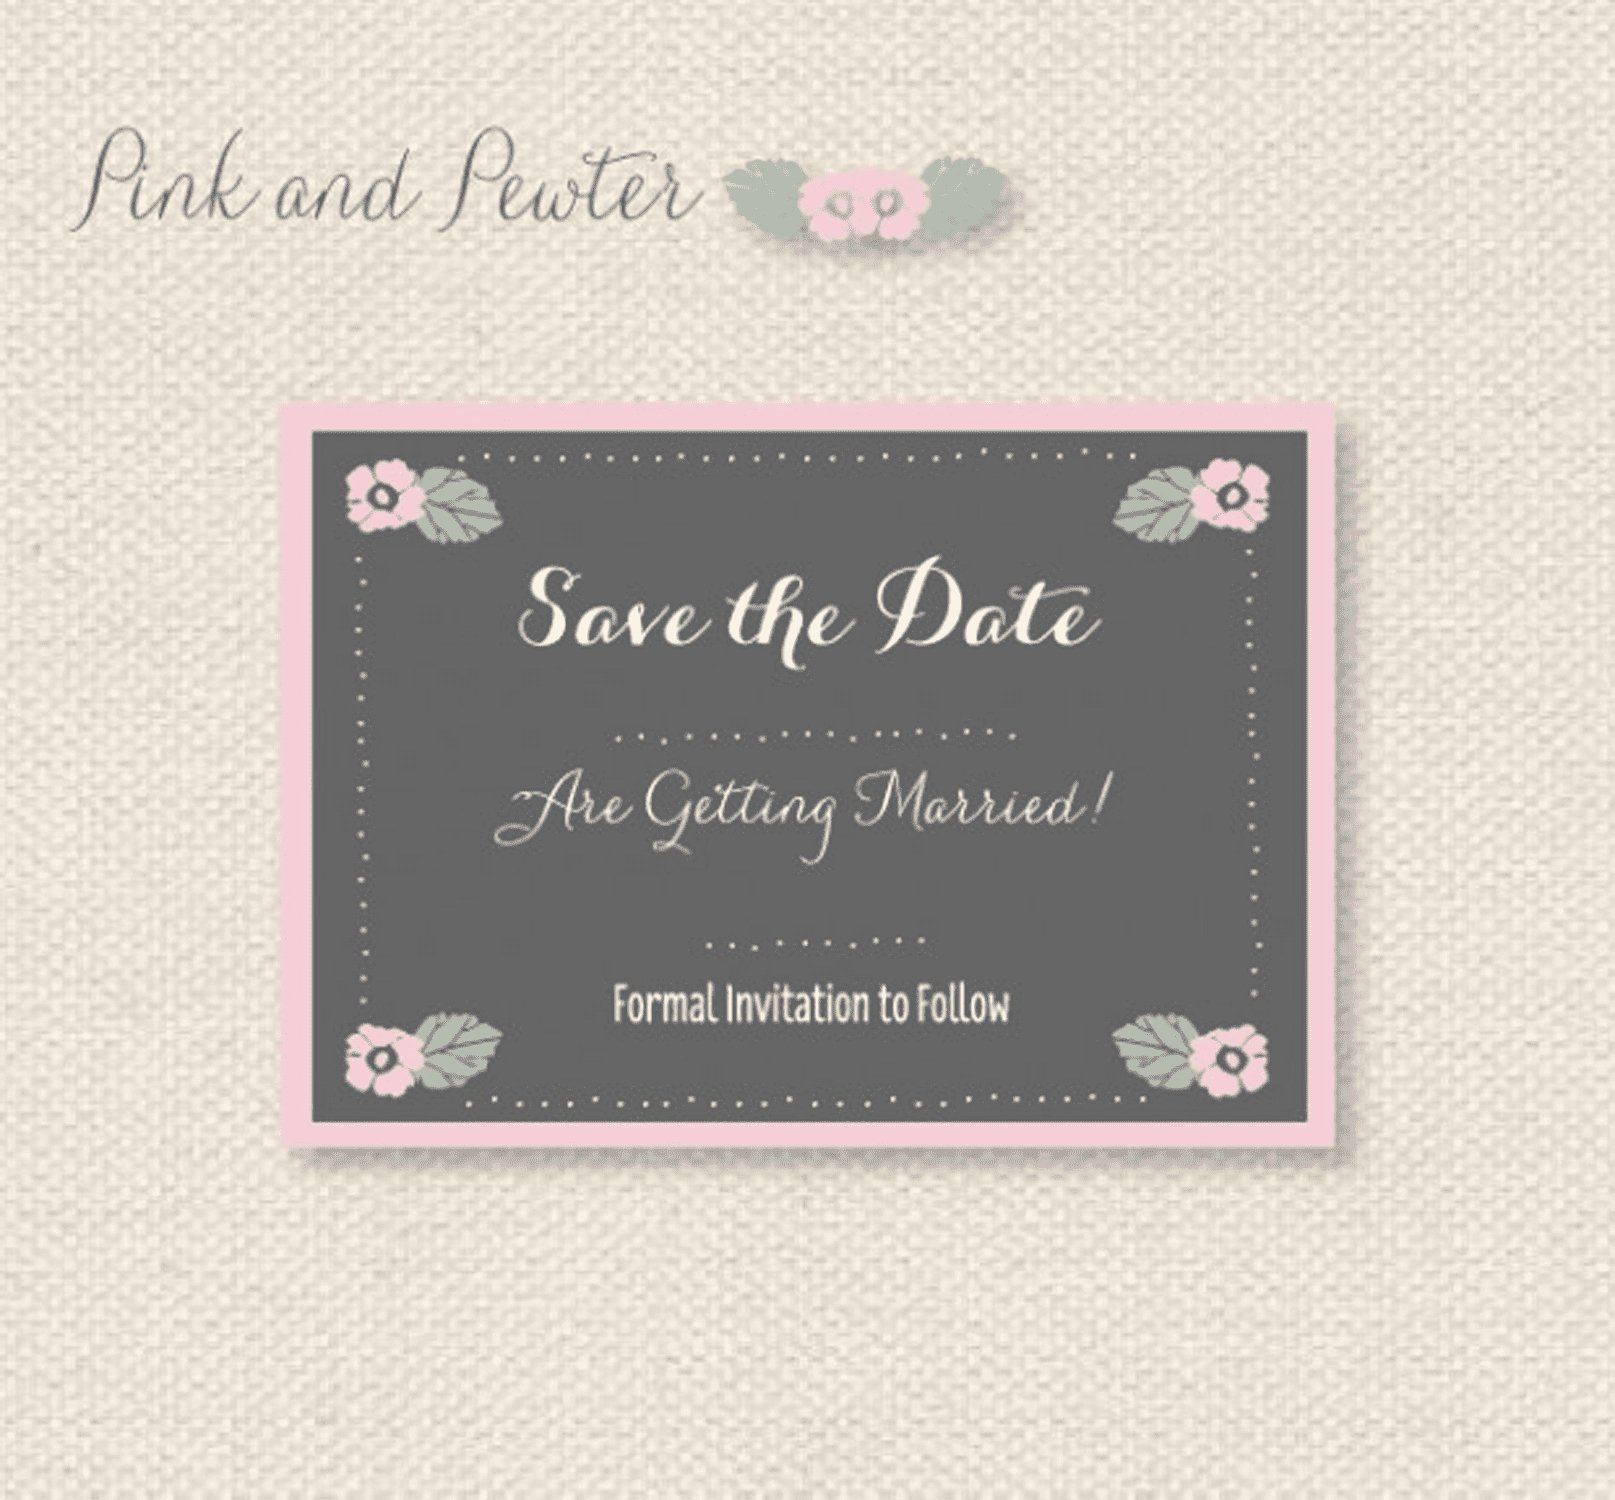 11 Free Save The Date Templates - Free Printable Save The Date Birthday Invitations